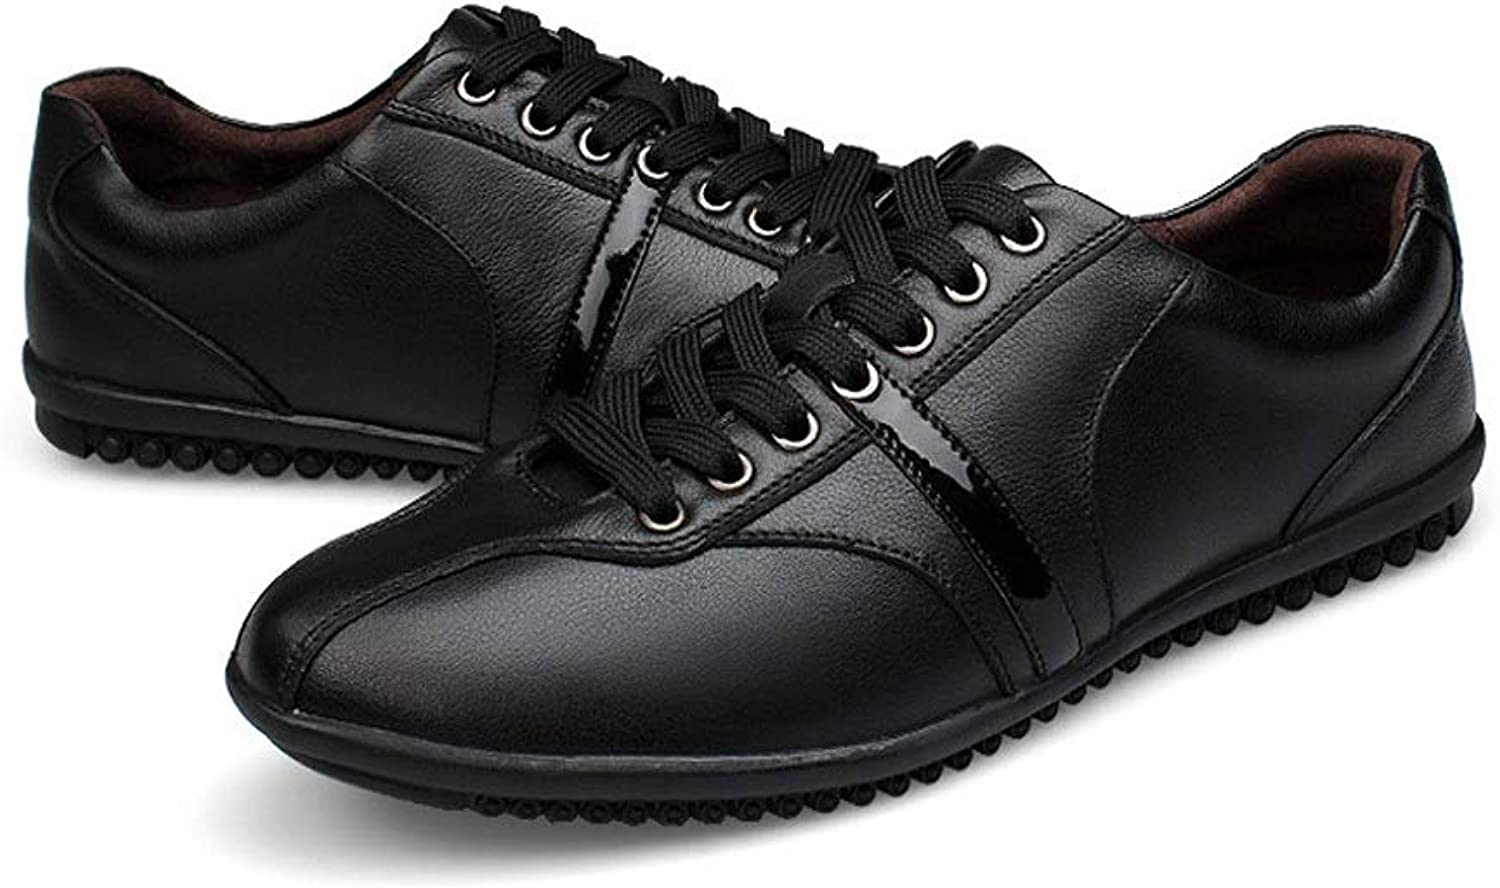 CATEDOT Men's shoes Casual Comfortable Breathable Travel Lightweight leather shoes (color   Black, Size   5UK)